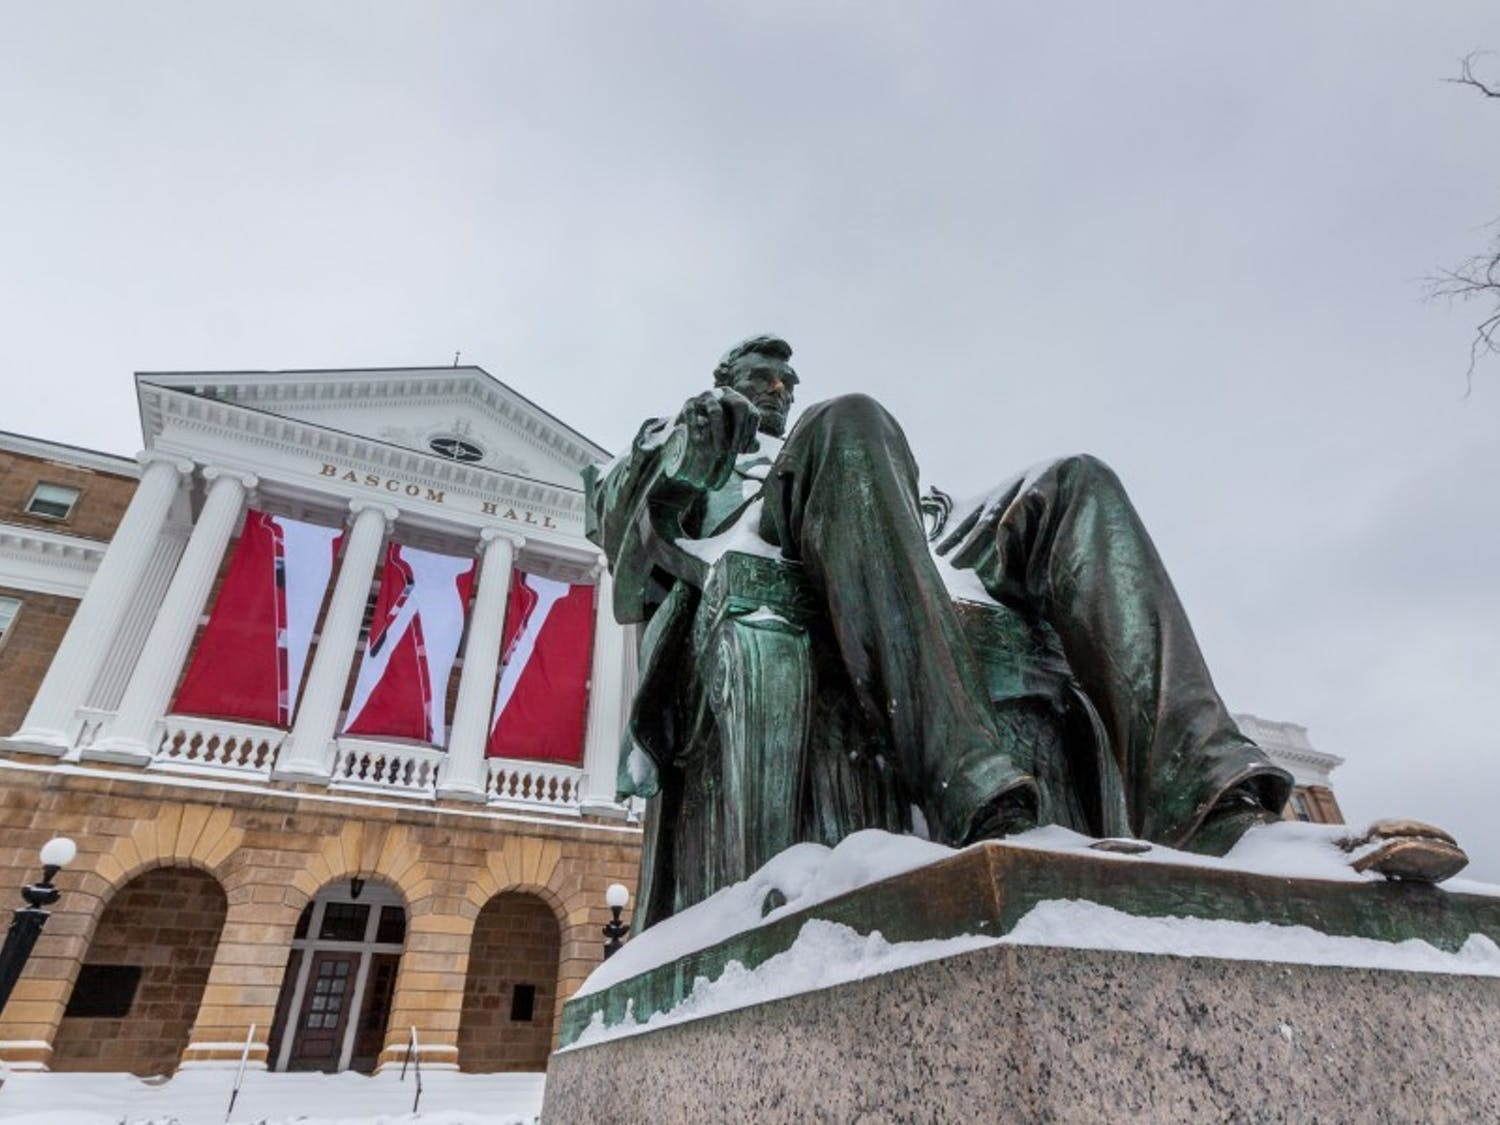 The average graduation time for UW-Madison's 2018-'19 graduating class was 3.96 years, the first time the number has dropped under four years since the university started tracking the measure.